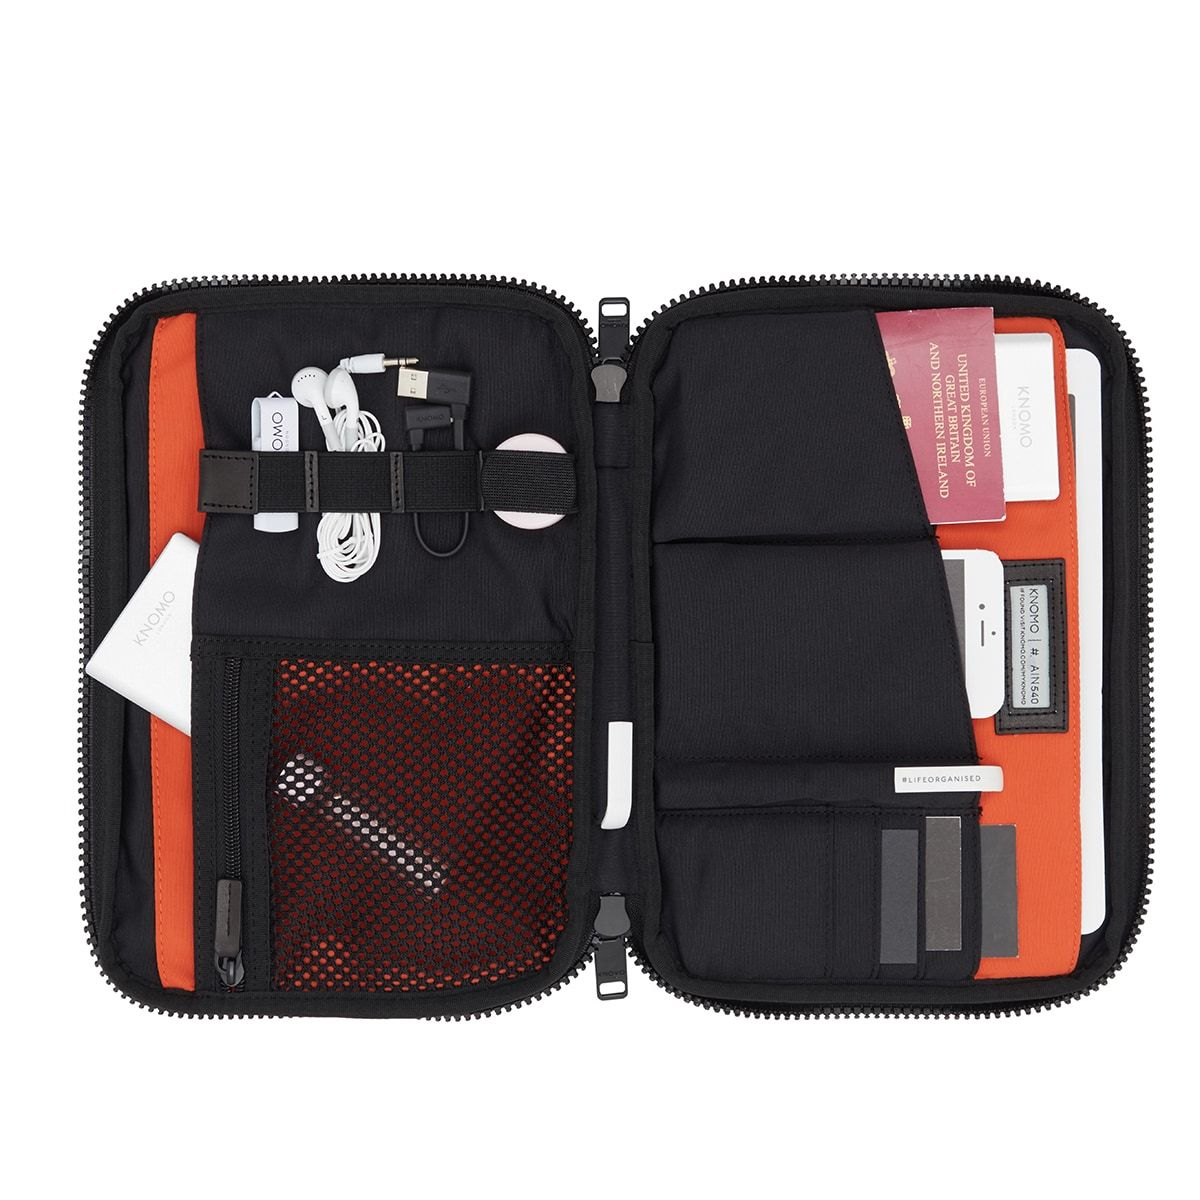 "Fulham Knomad X-Body Organiser Tech Organiser For Everyday - 10.5"" -  10.5""  